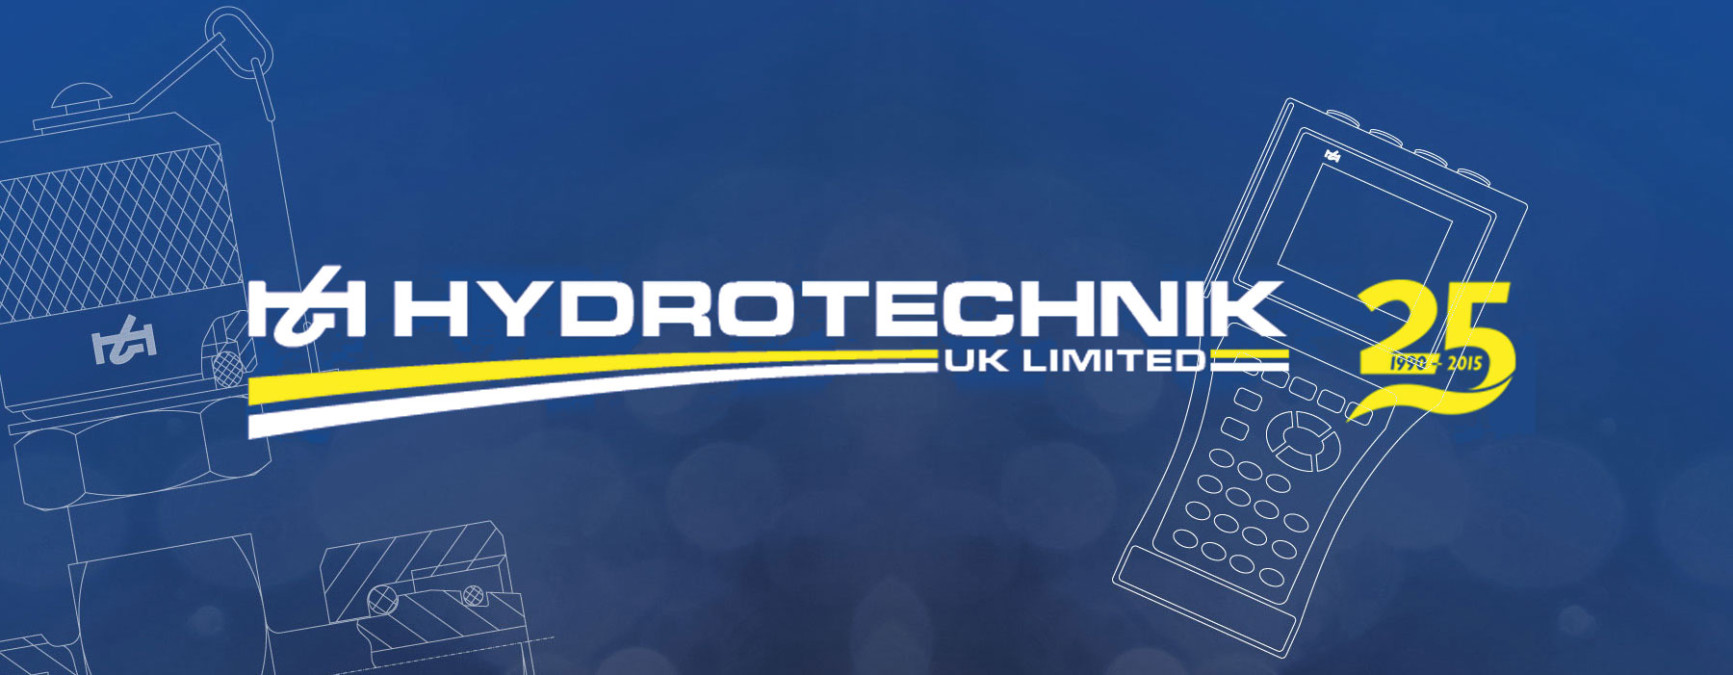 Case Study – Hydrotechnik SEO, PPC, and Remarketing